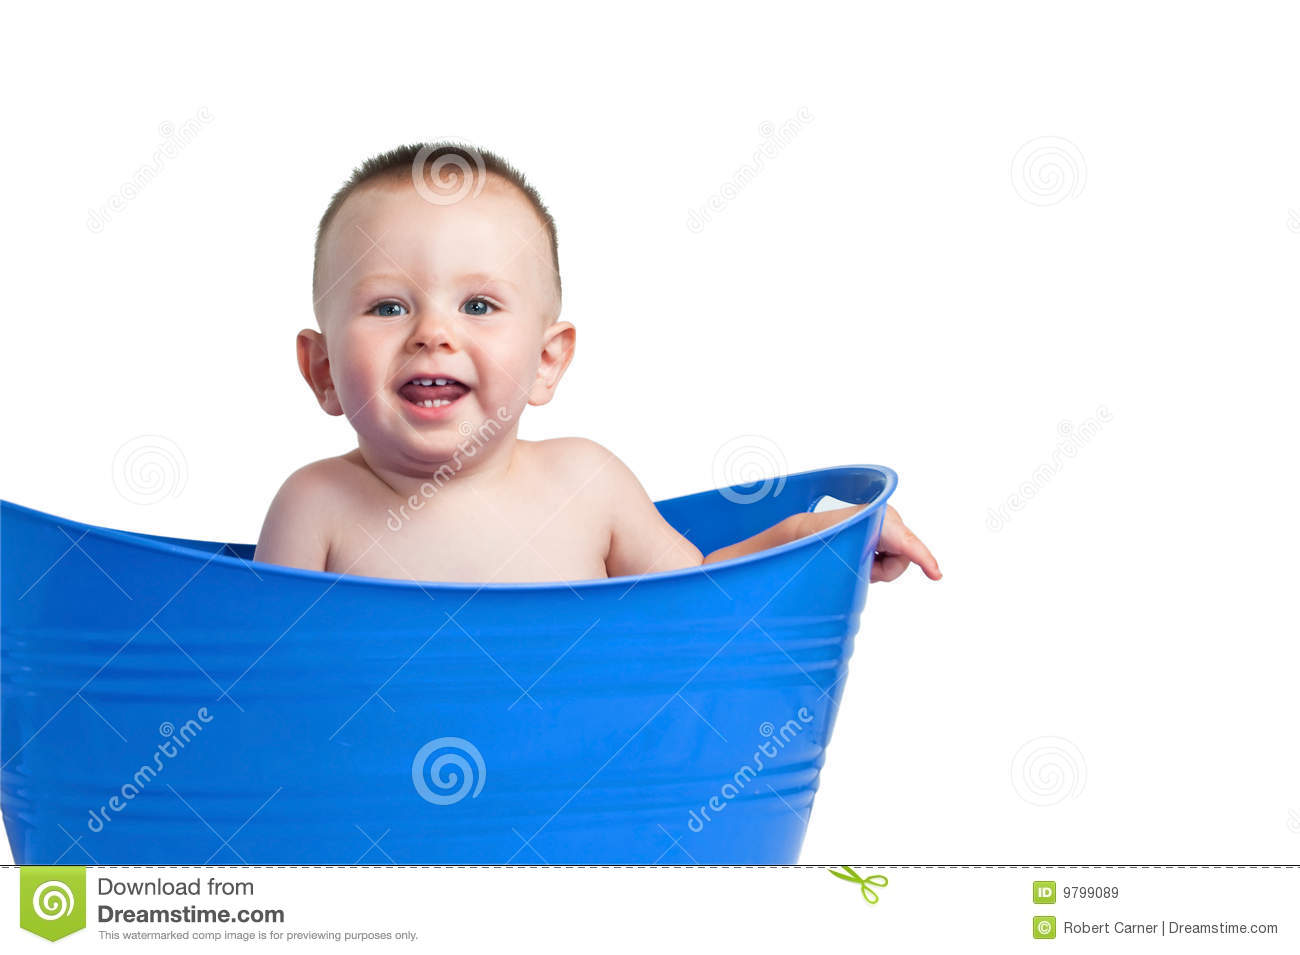 Baby Laundry Bin Baby In Blue Laundry Basket Royalty Free Stock Images